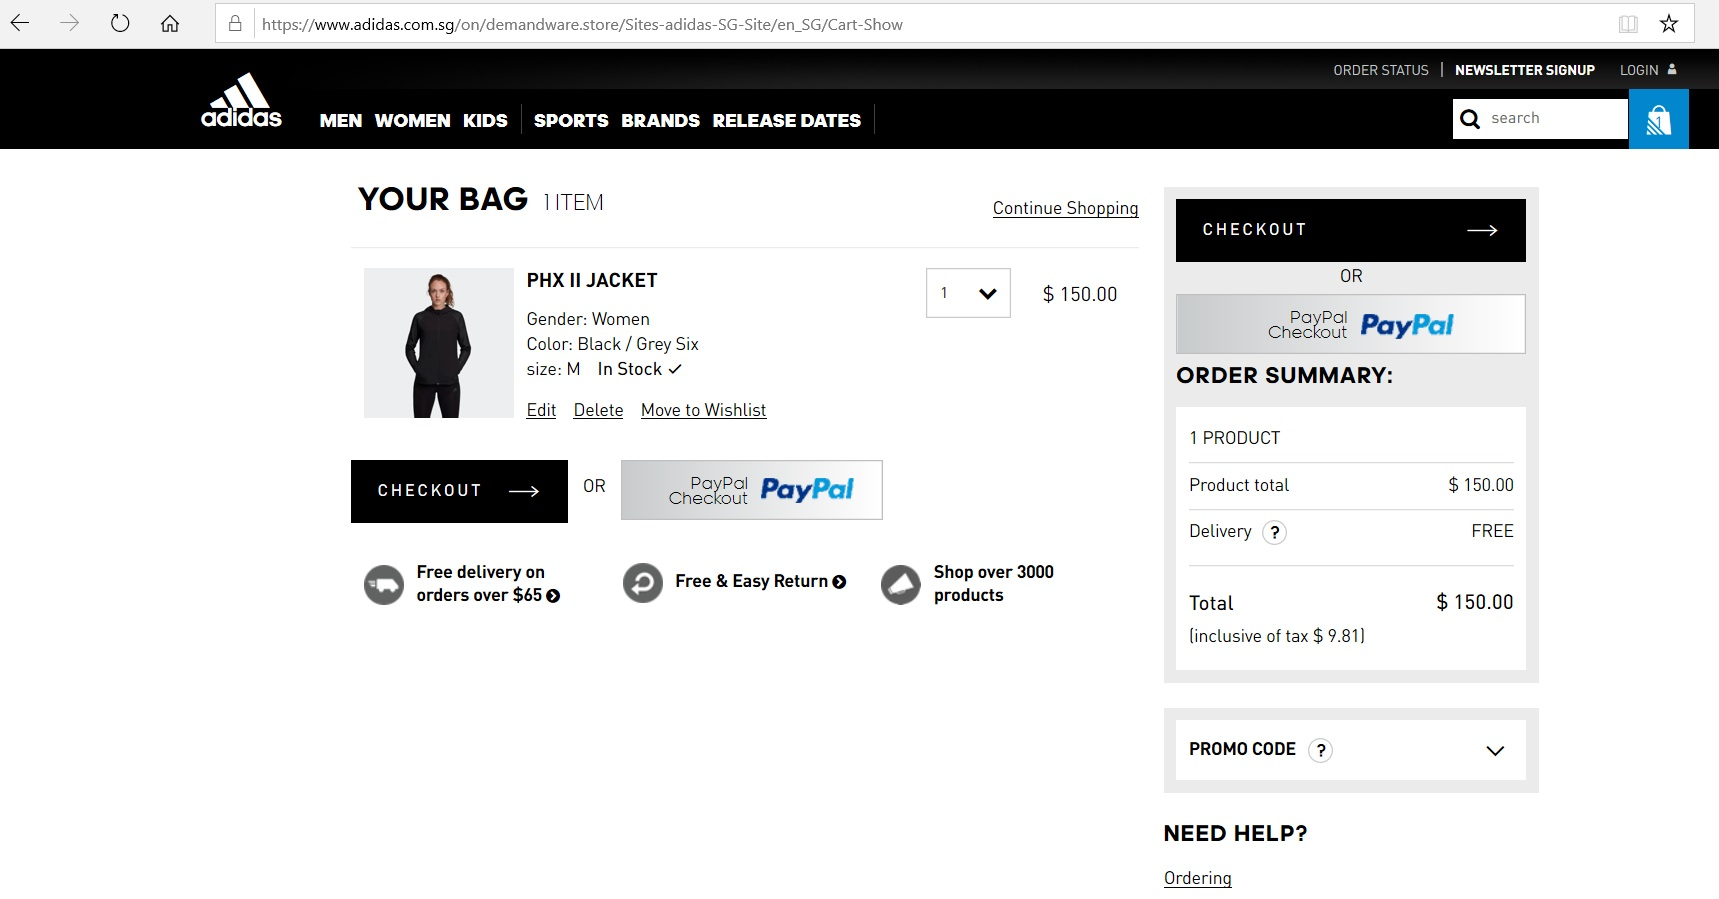 Online shopping cart with an order summary.